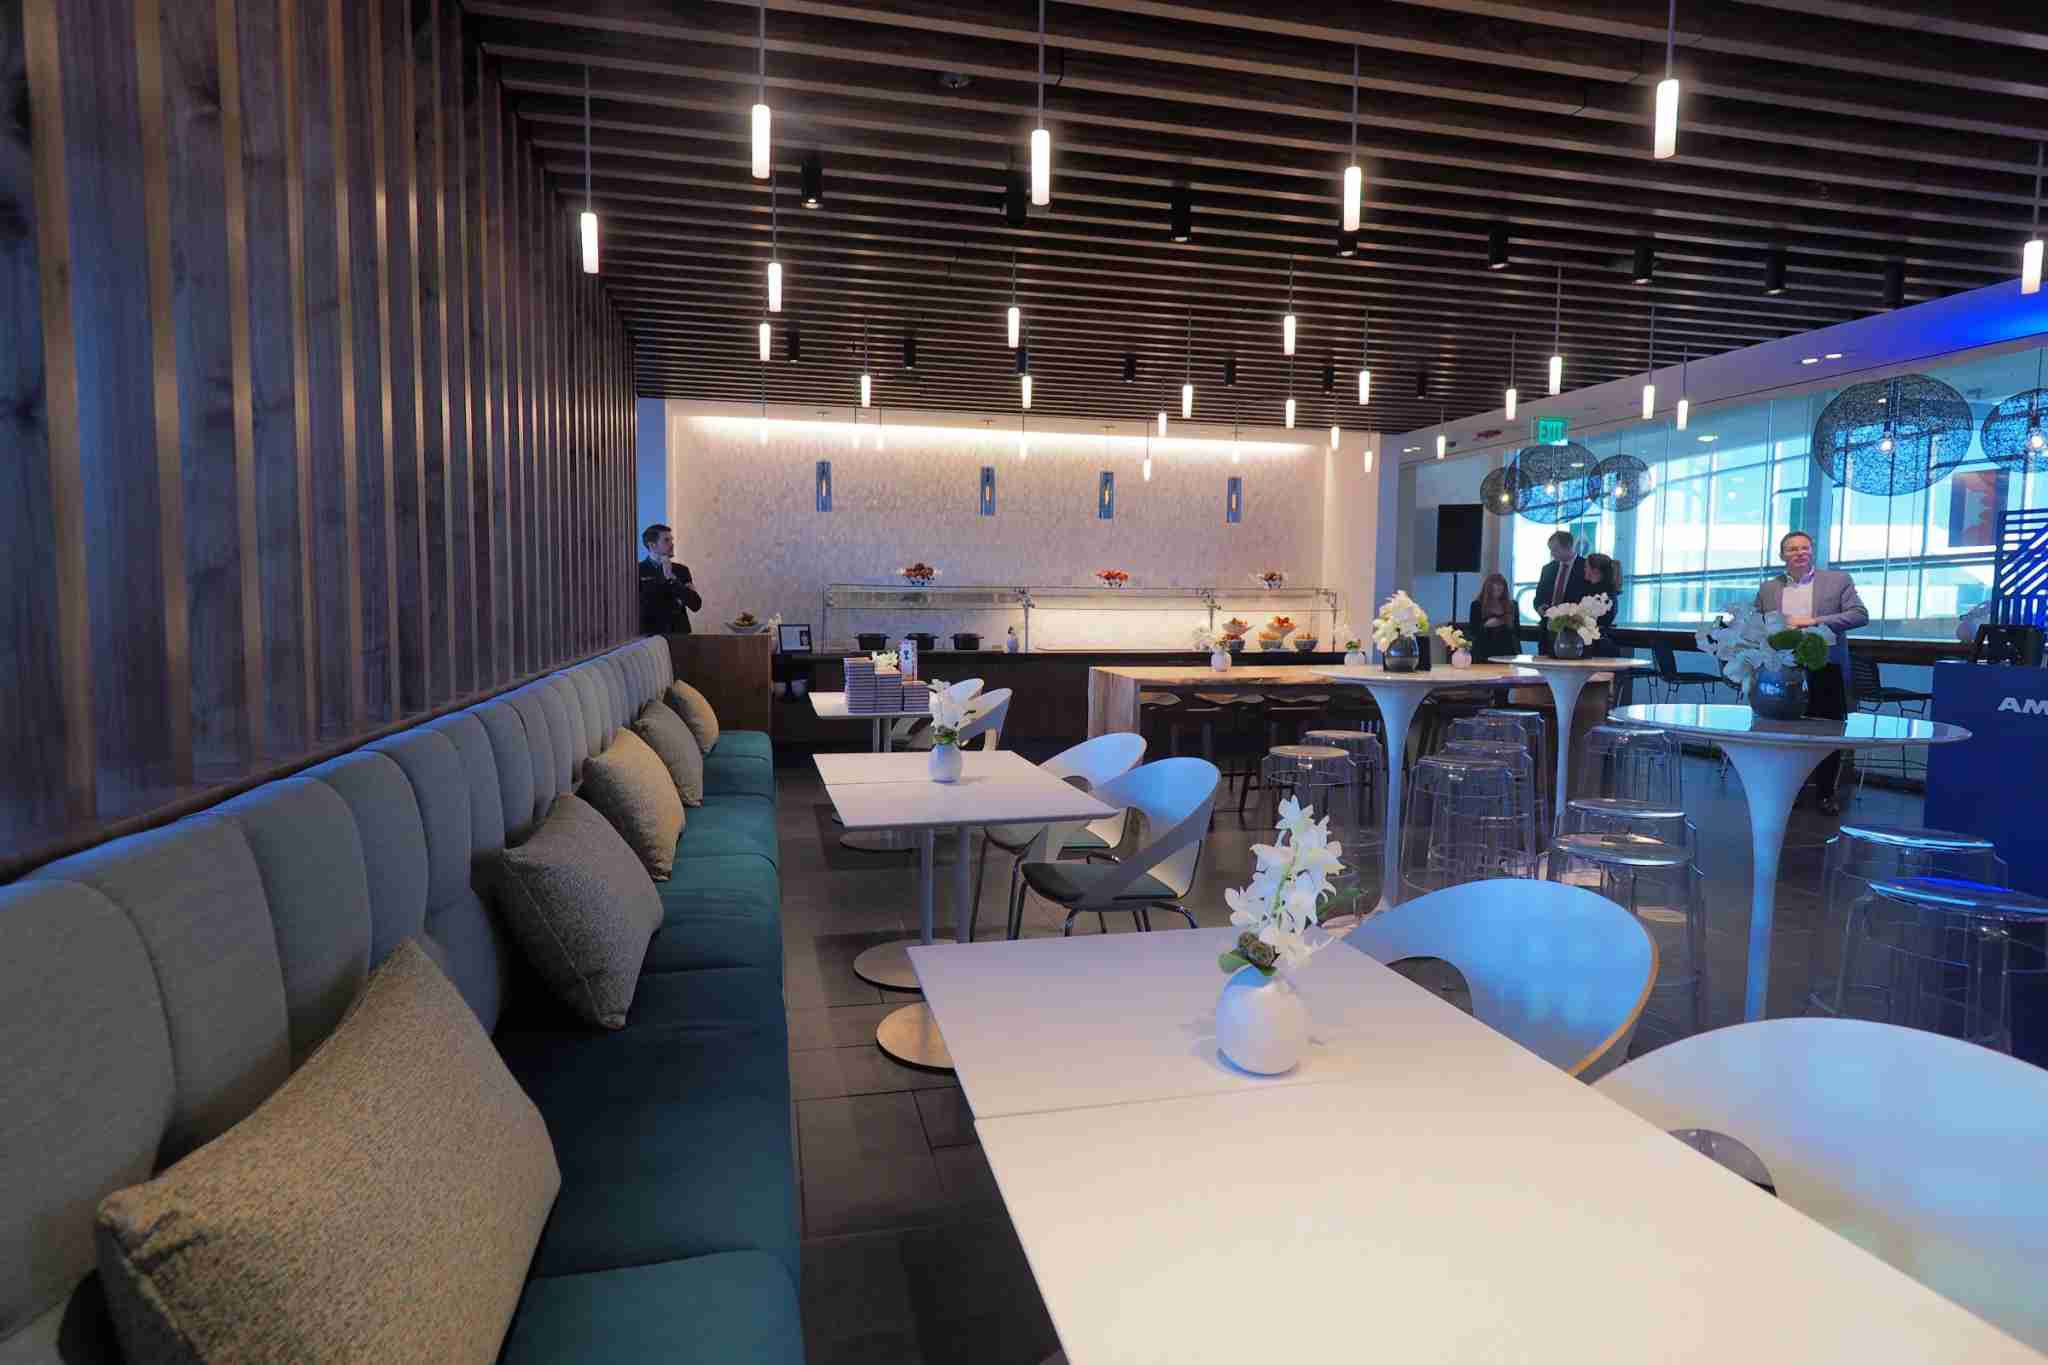 The Amex Centurion Lounge in Philadelphia (PHL). (Photo by Zach Honig / The Points Guy)